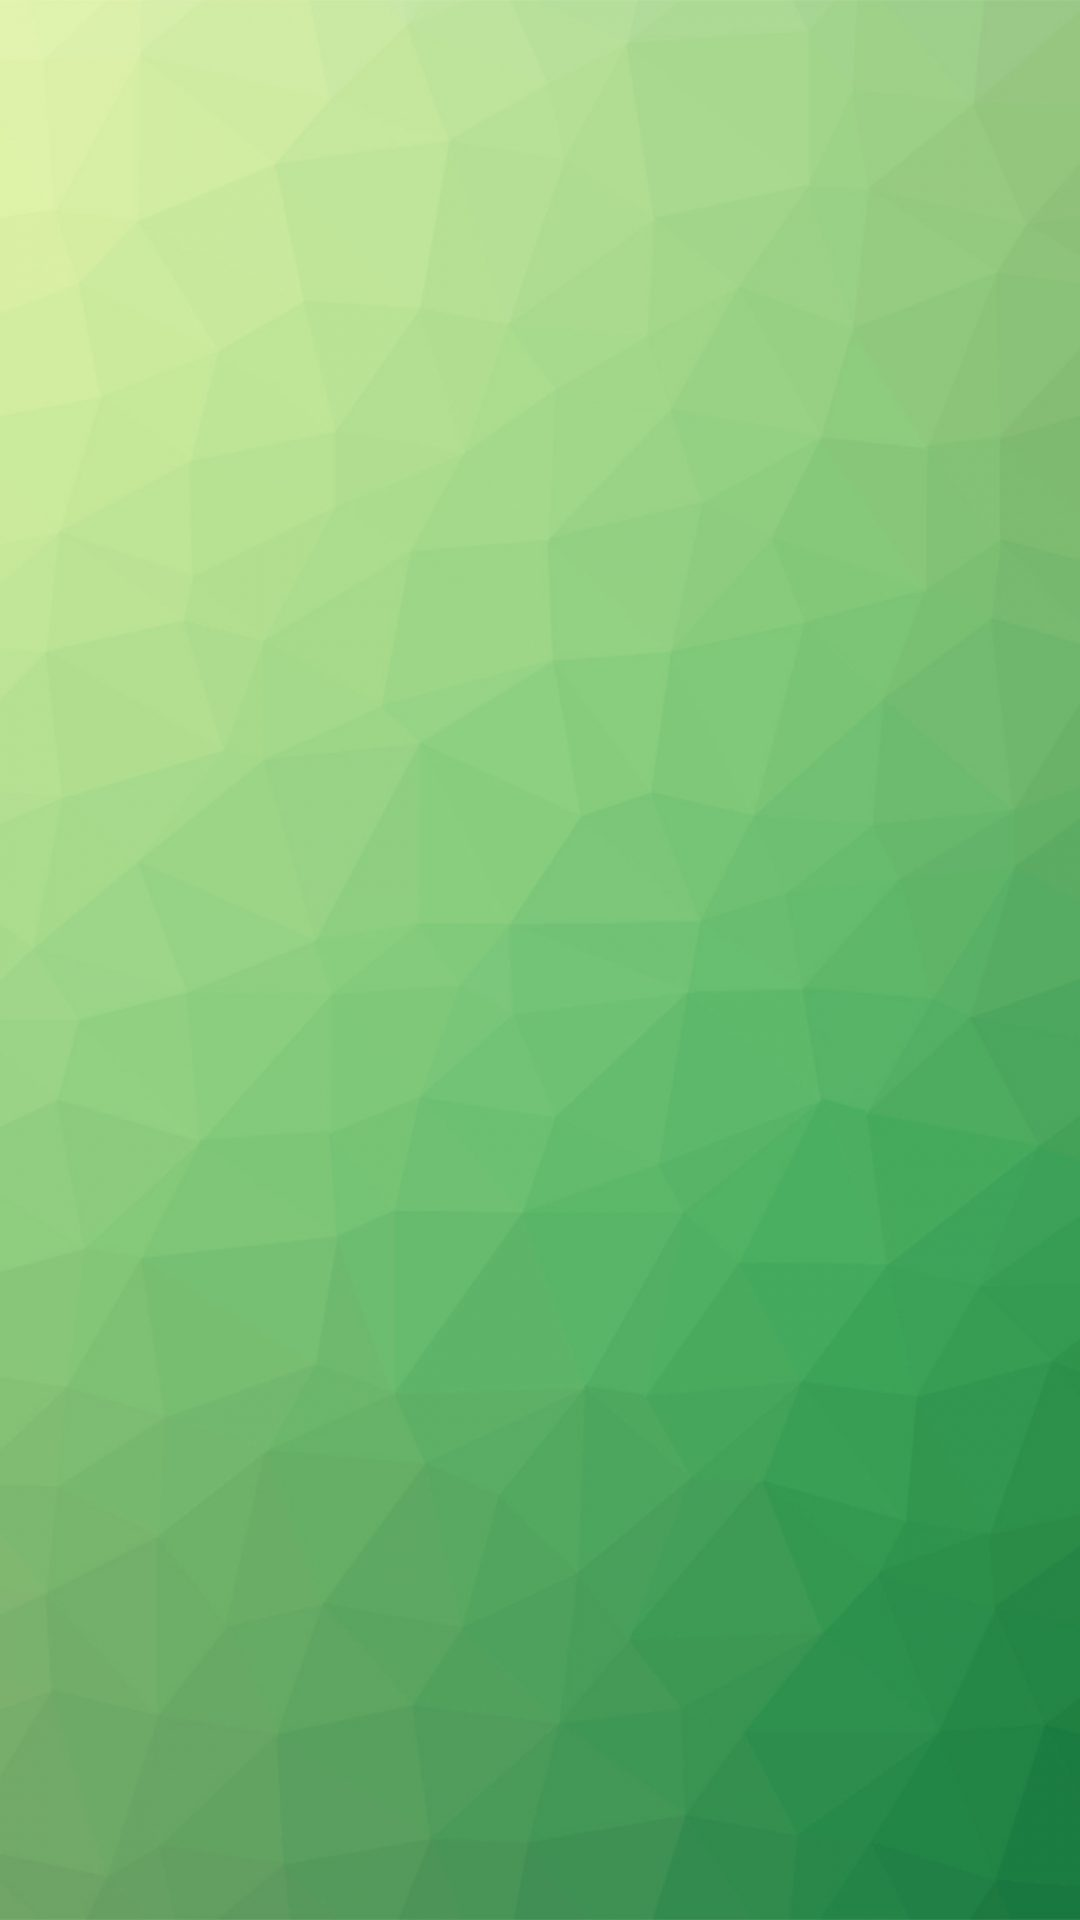 Poly Art Abstract Green Pattern